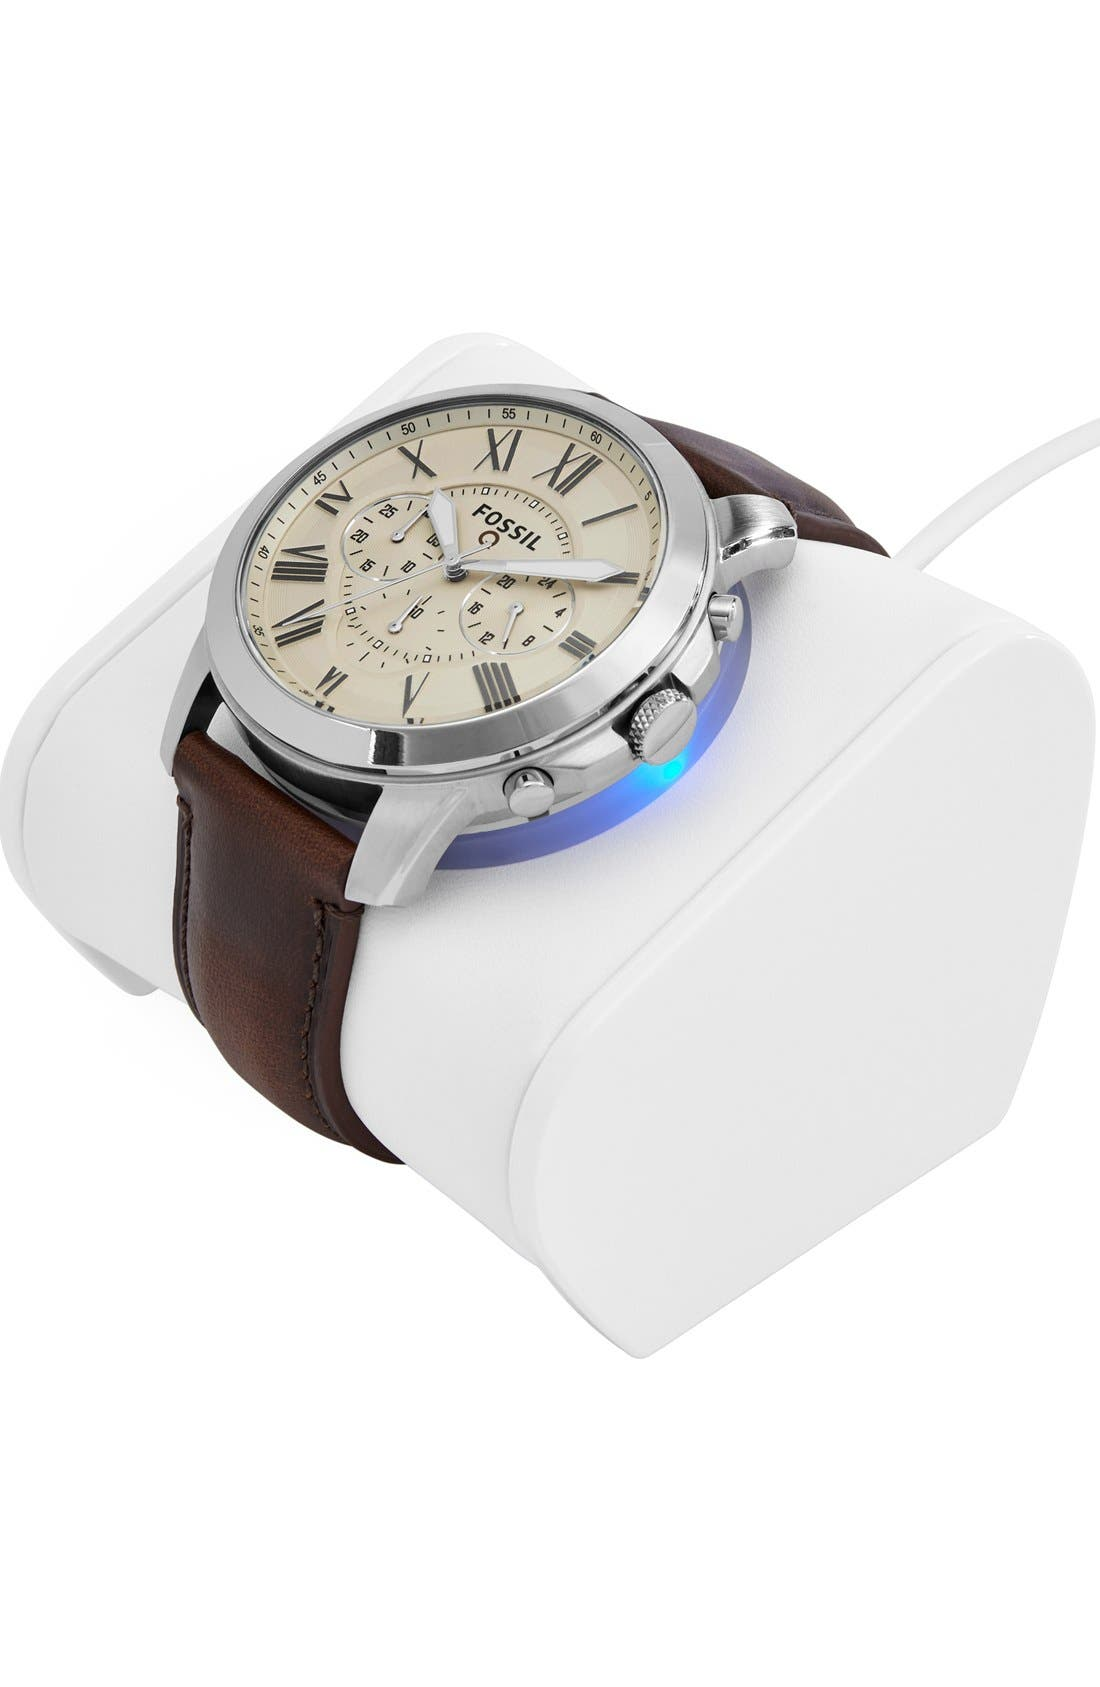 Fossil 'Fossil Q - Grant' Round Chronograph Leather Strap Smart Watch, 44mm,                             Alternate thumbnail 4, color,                             Brown/ Egg Shell